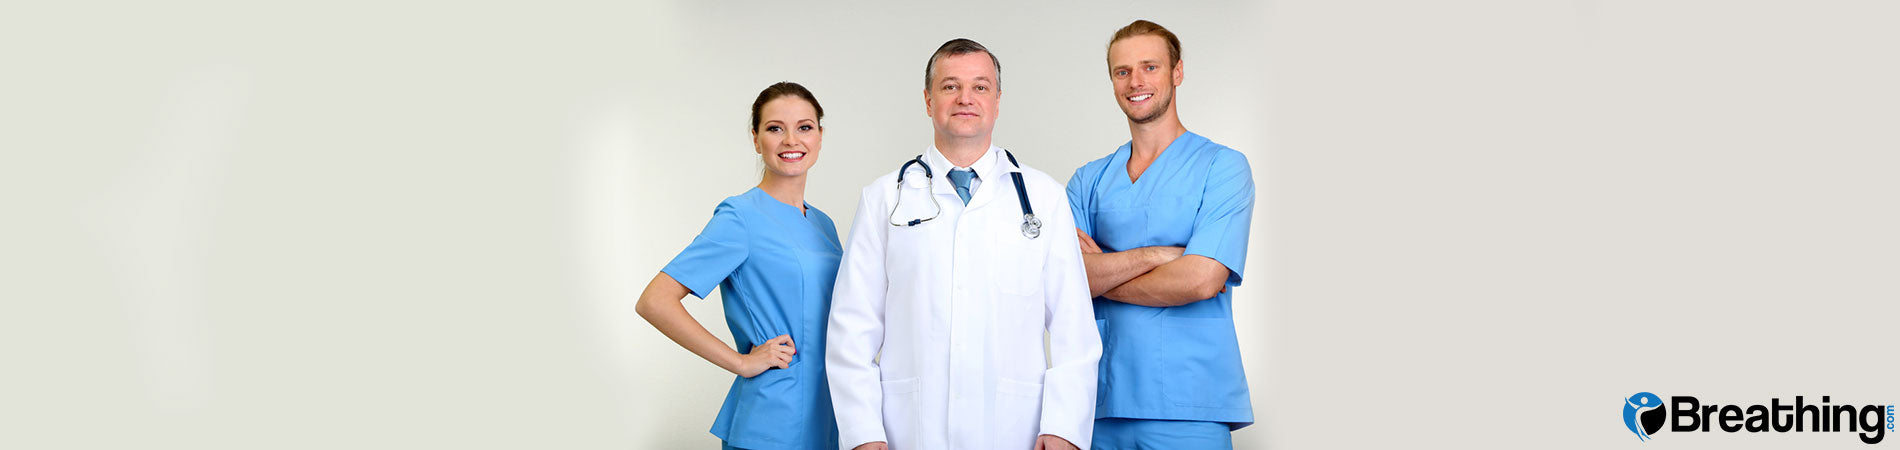 Health Professionals and Modalities